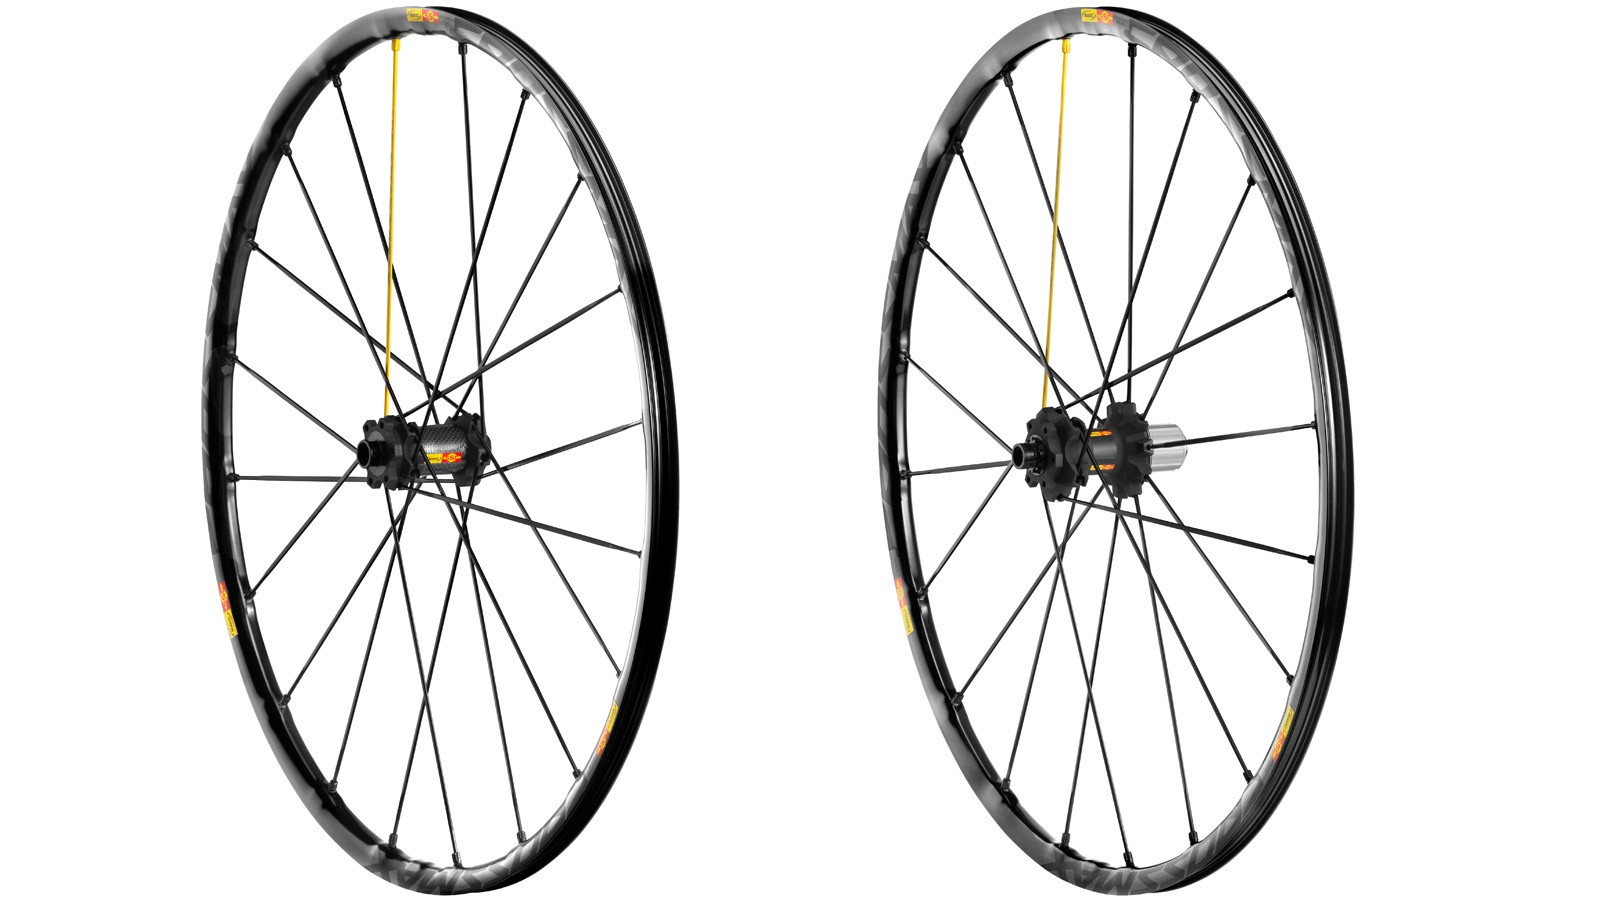 The redesigned Crossmax SL is the lightest mountain bike wheelset in Mavic's line